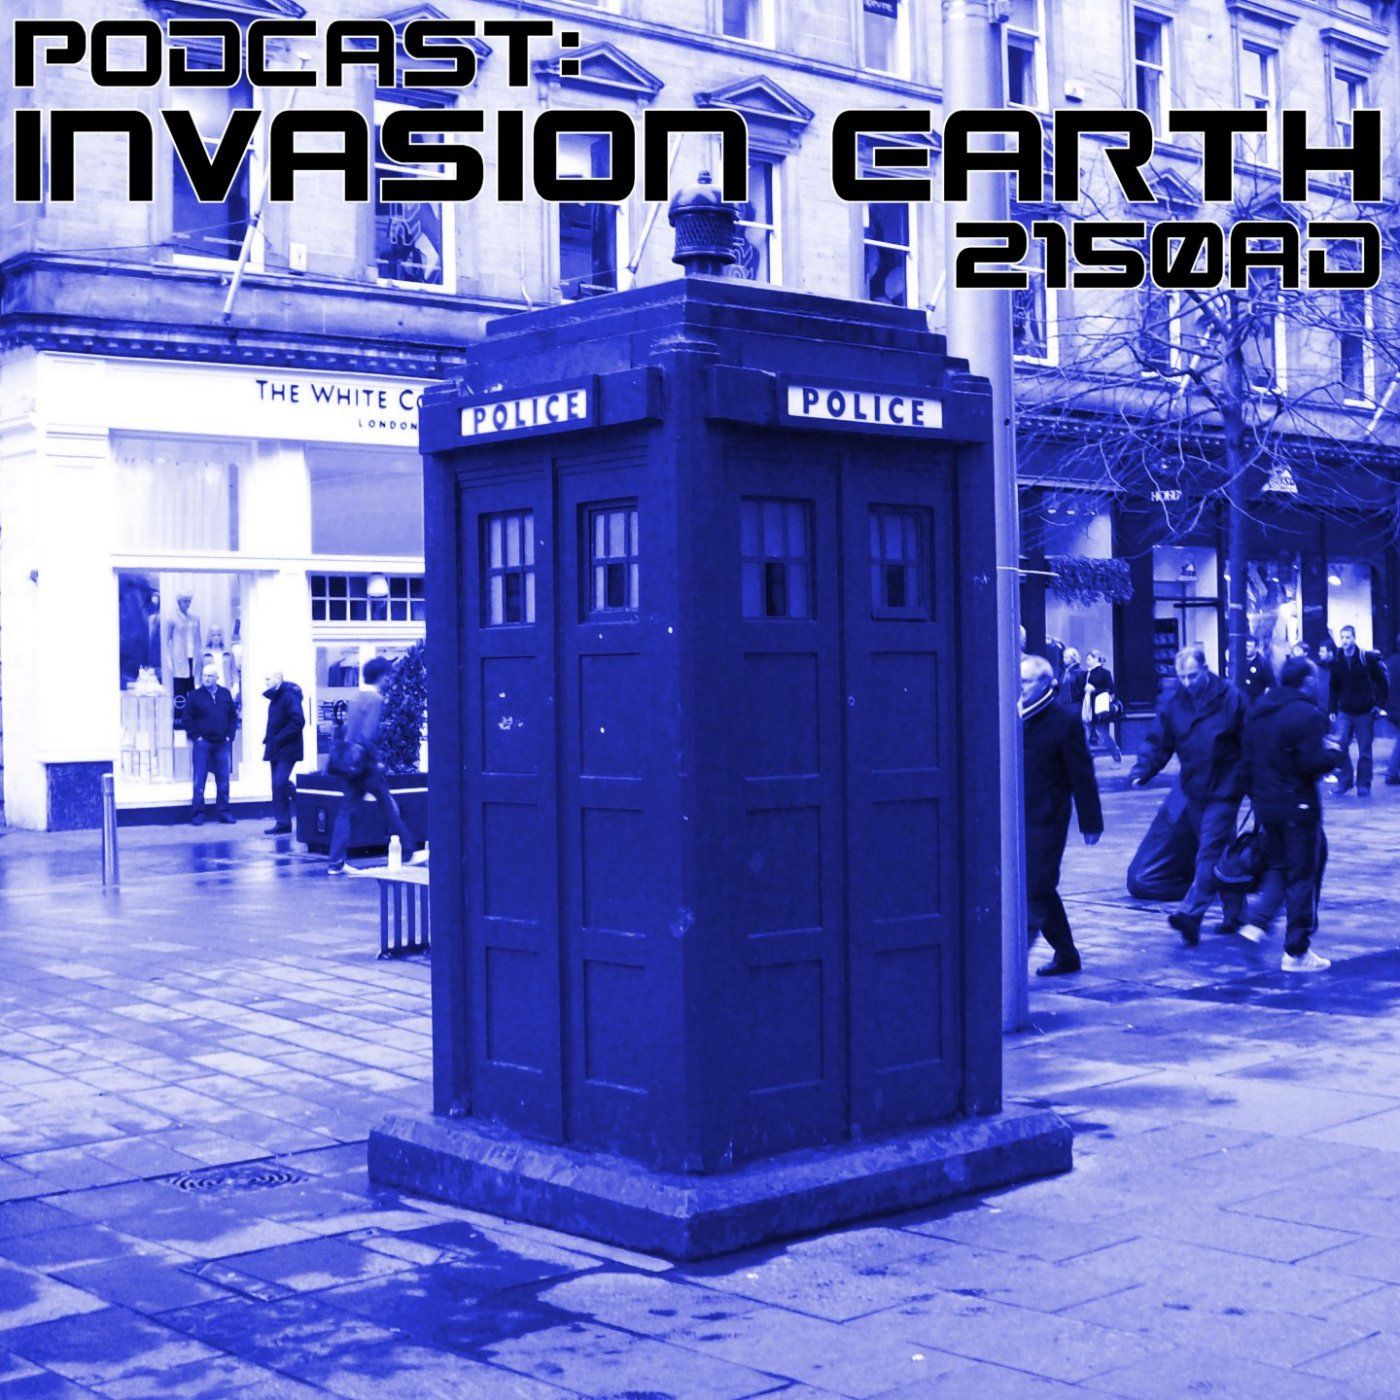 Podcast Invasion Earth 2150AD